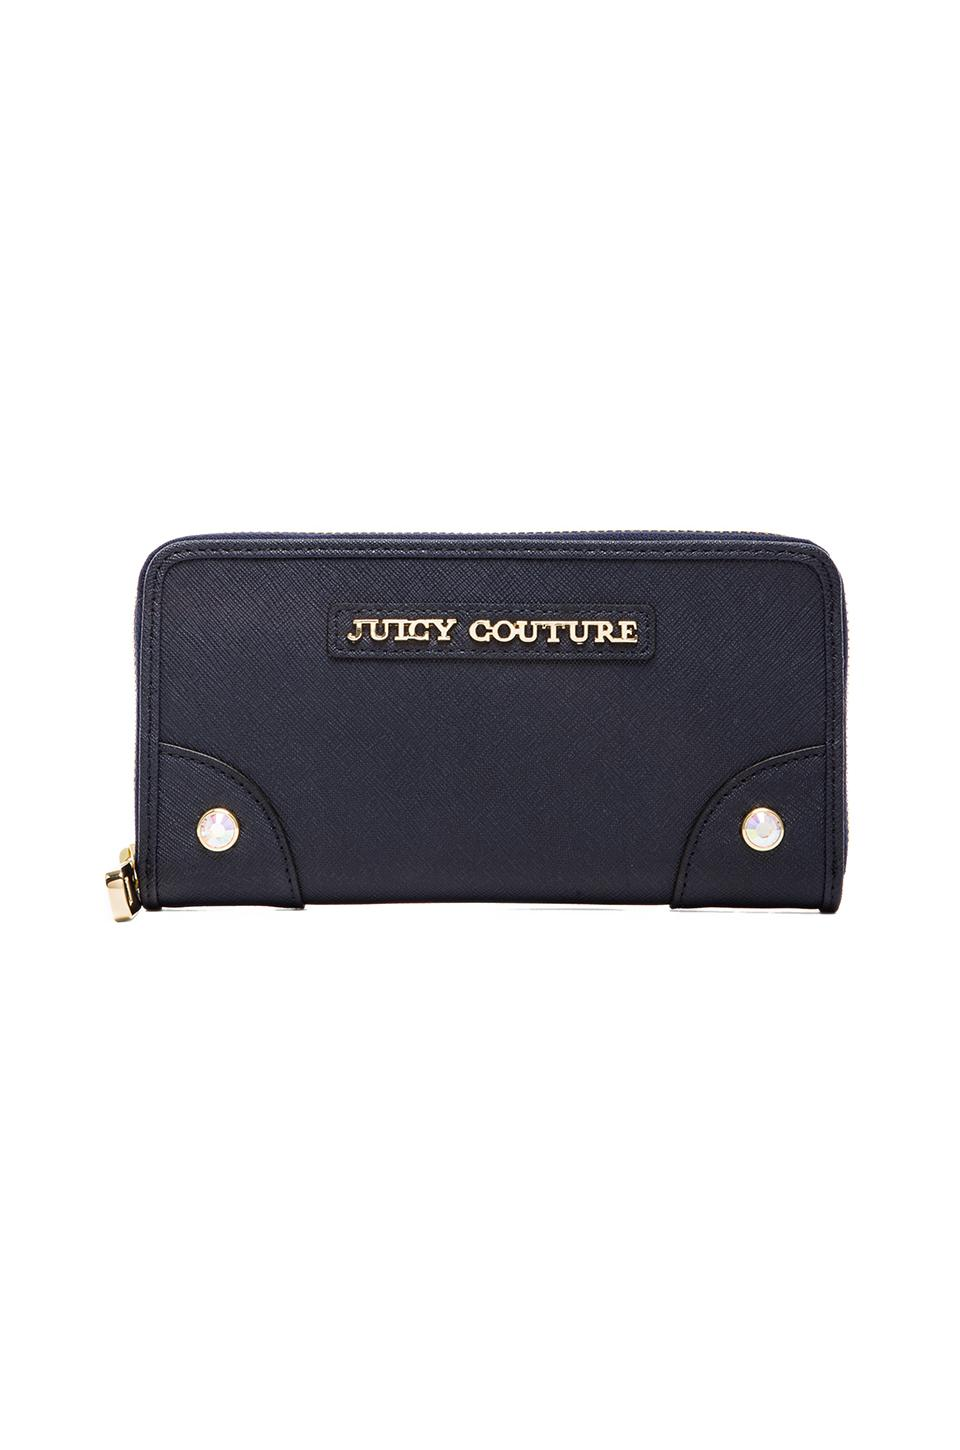 Juicy Couture Sophia Collection Continental Zip Wallet in Regal